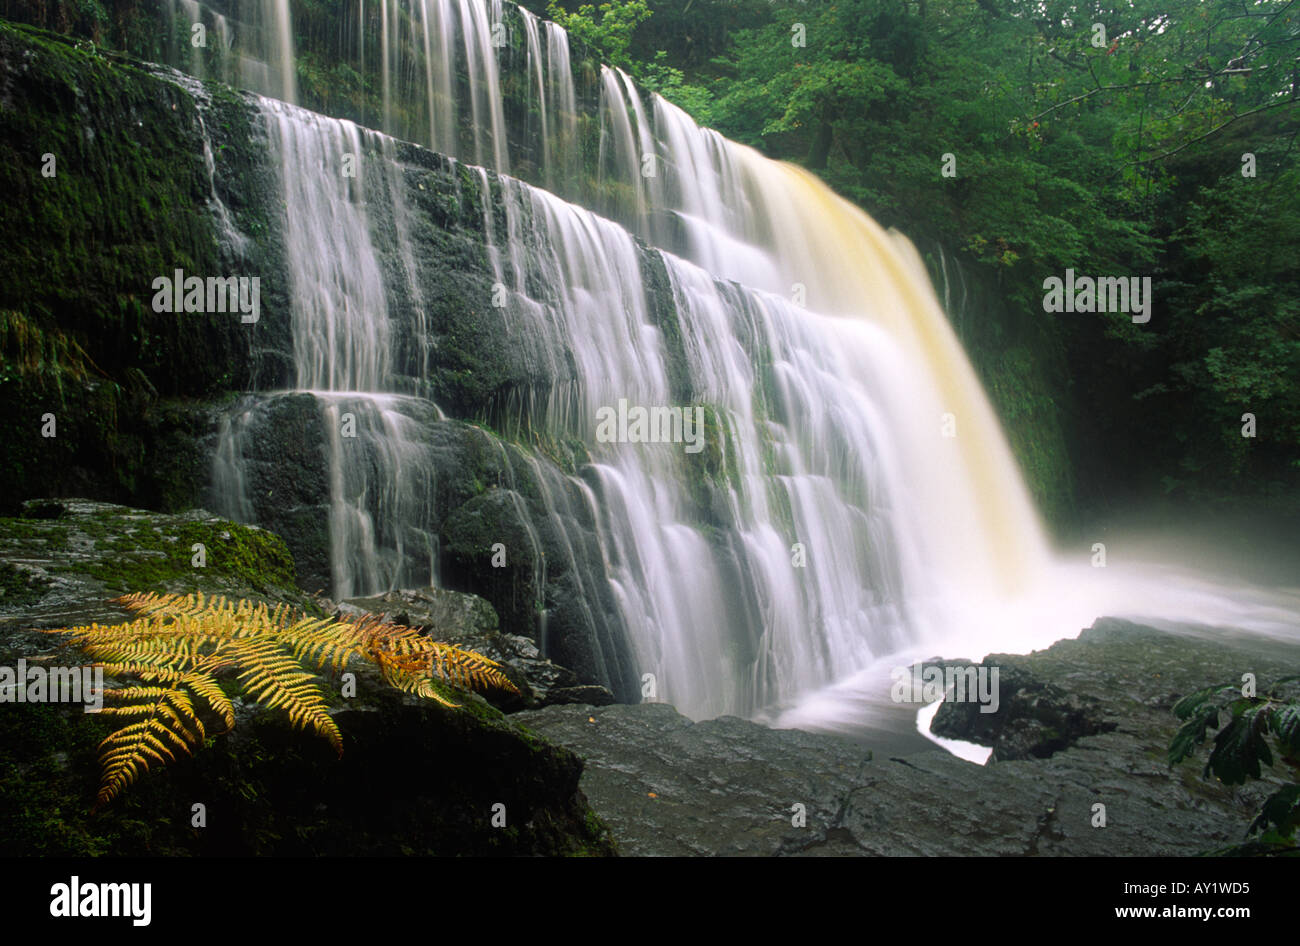 Sgwd Clun Gwyn waterfall otherwise known as The Upper Fall in the Brecon Beacons Wales UK - Stock Image